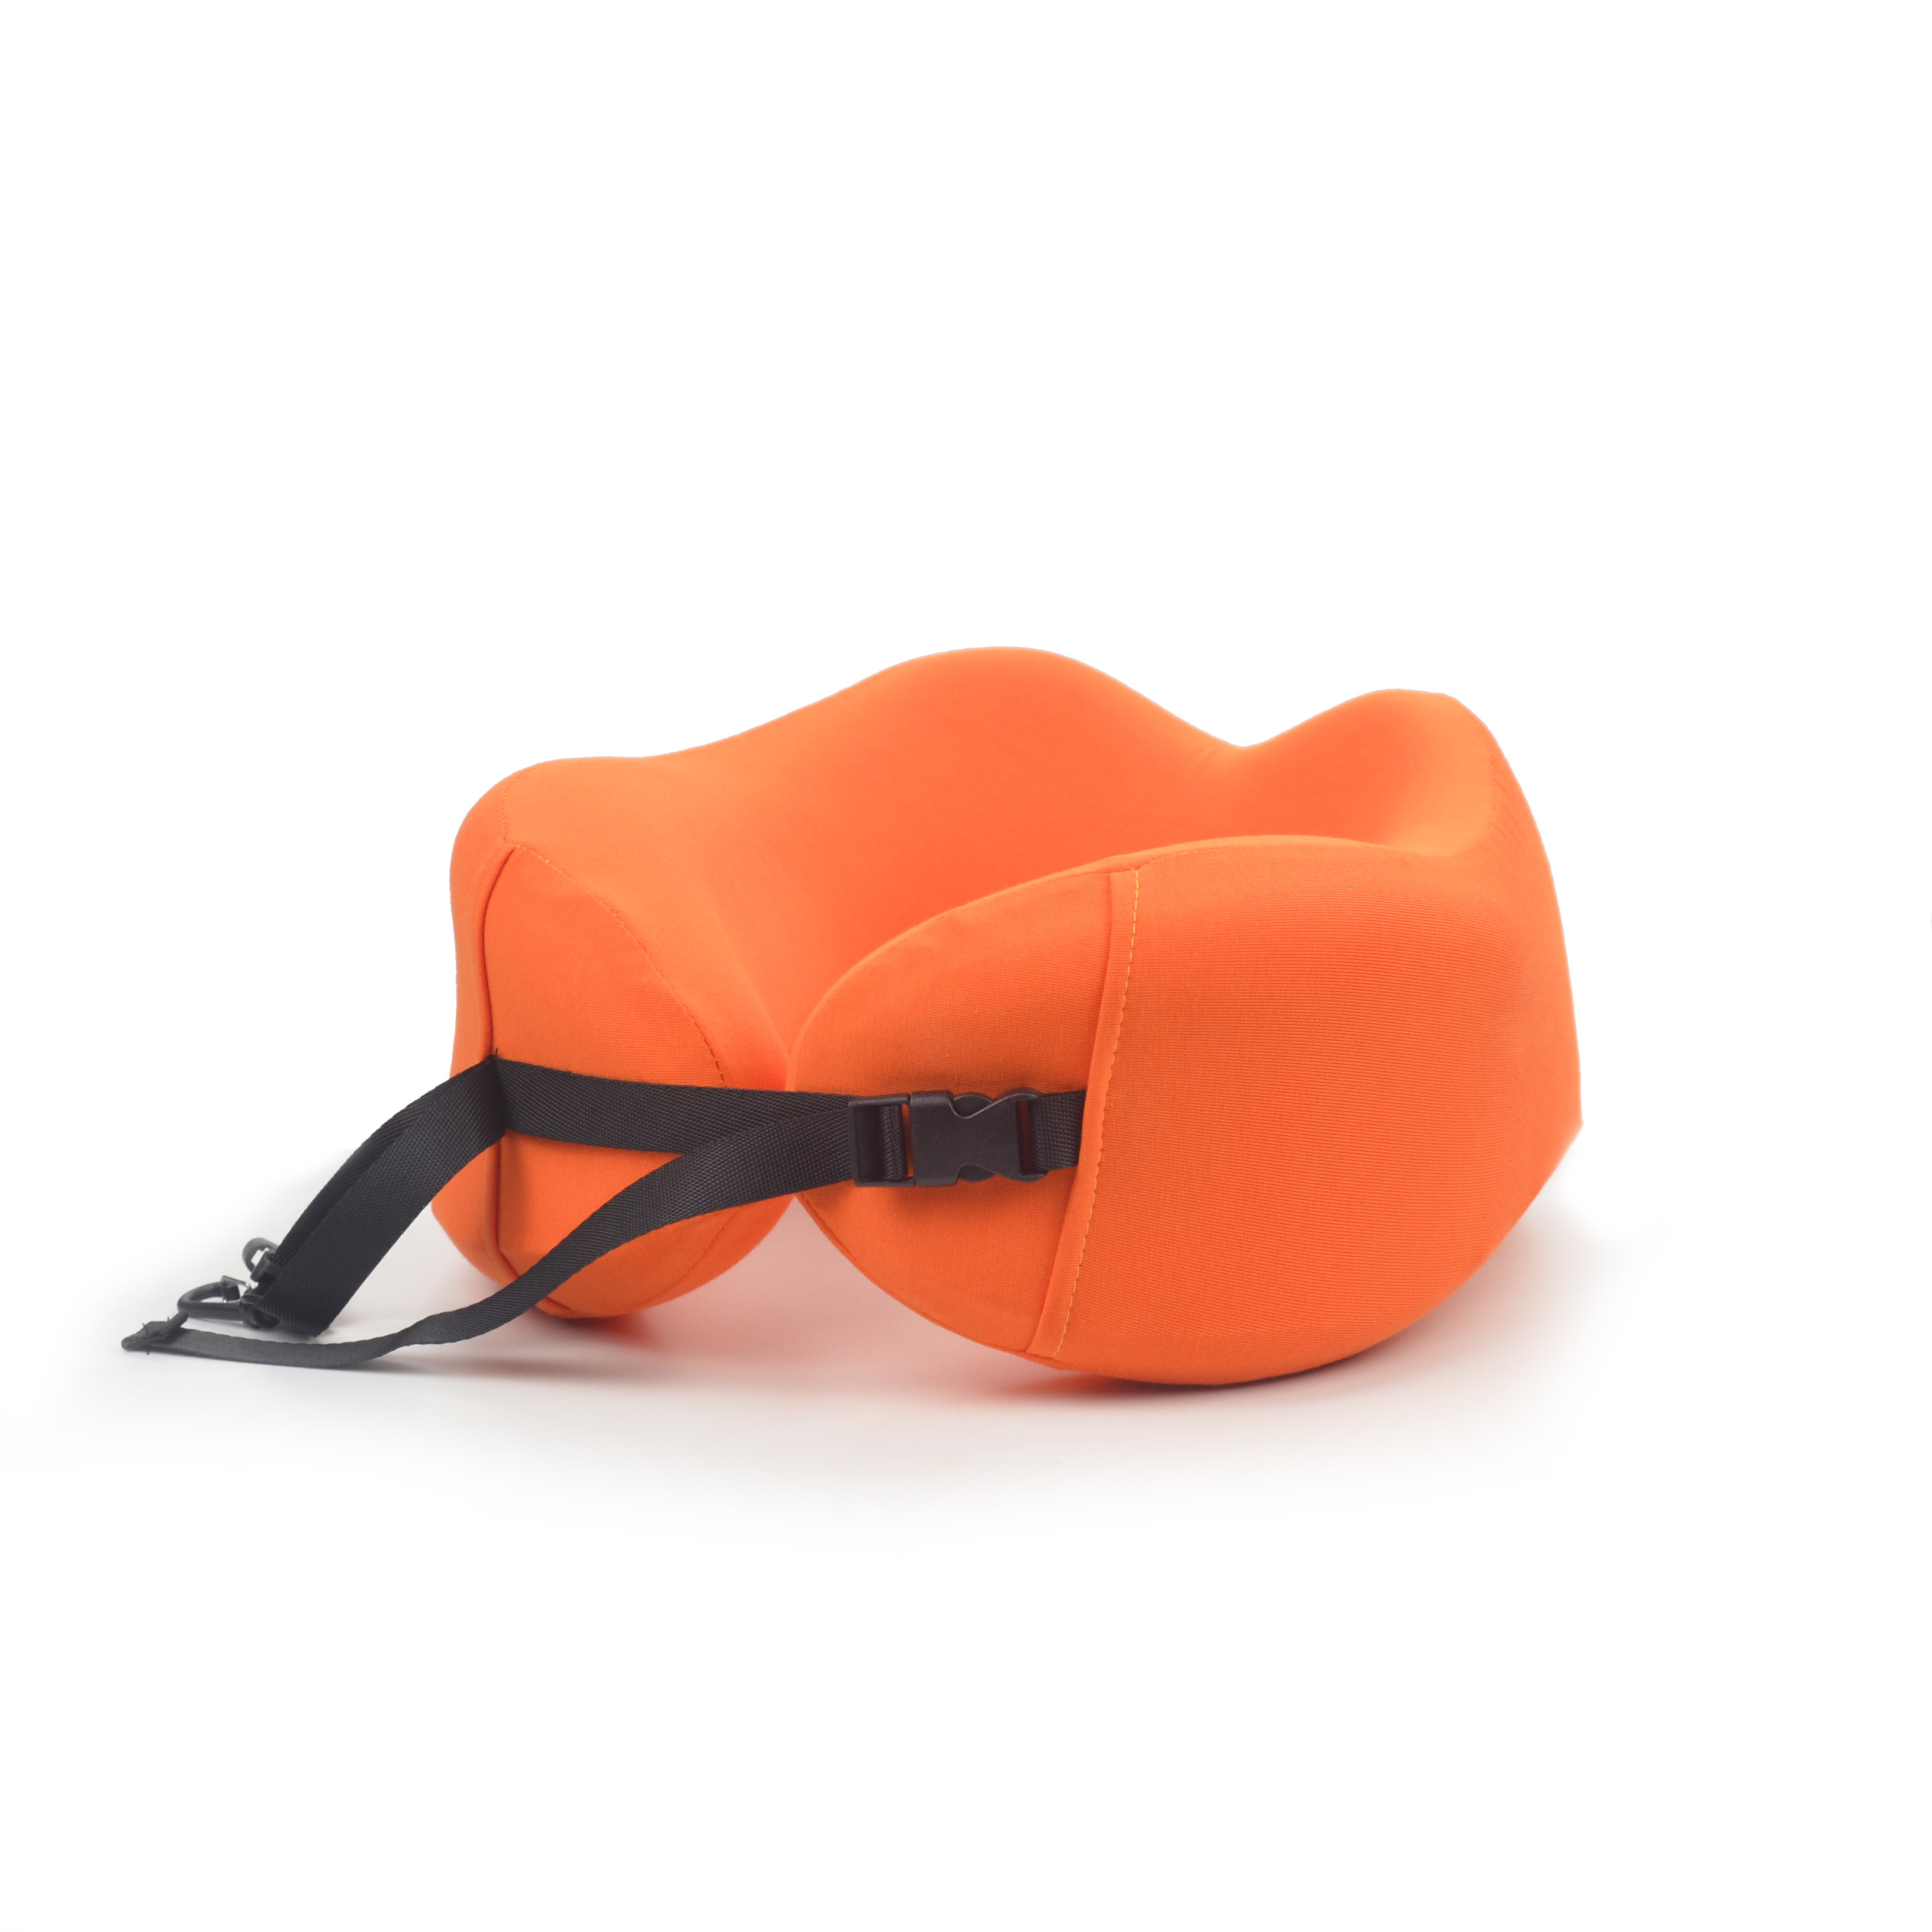 Orange solid color custom travel pillow foldable travel neck pillow